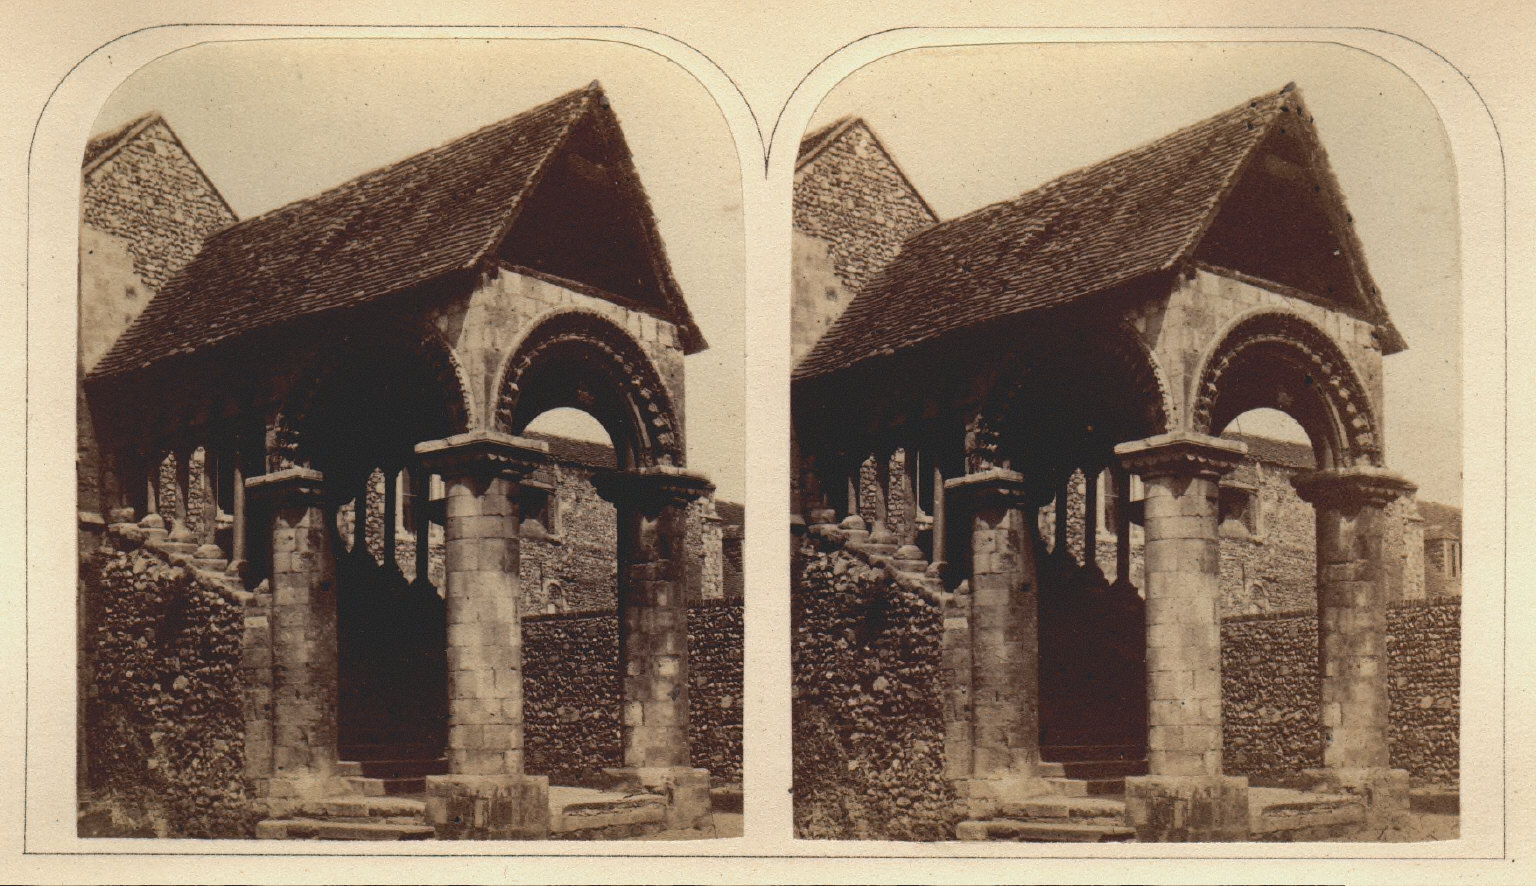 """""""The Stereoscopic Magazine: a Gallery of Landscape Scenery, Architecture, Antiquities, and Natural History"""", 1858"""